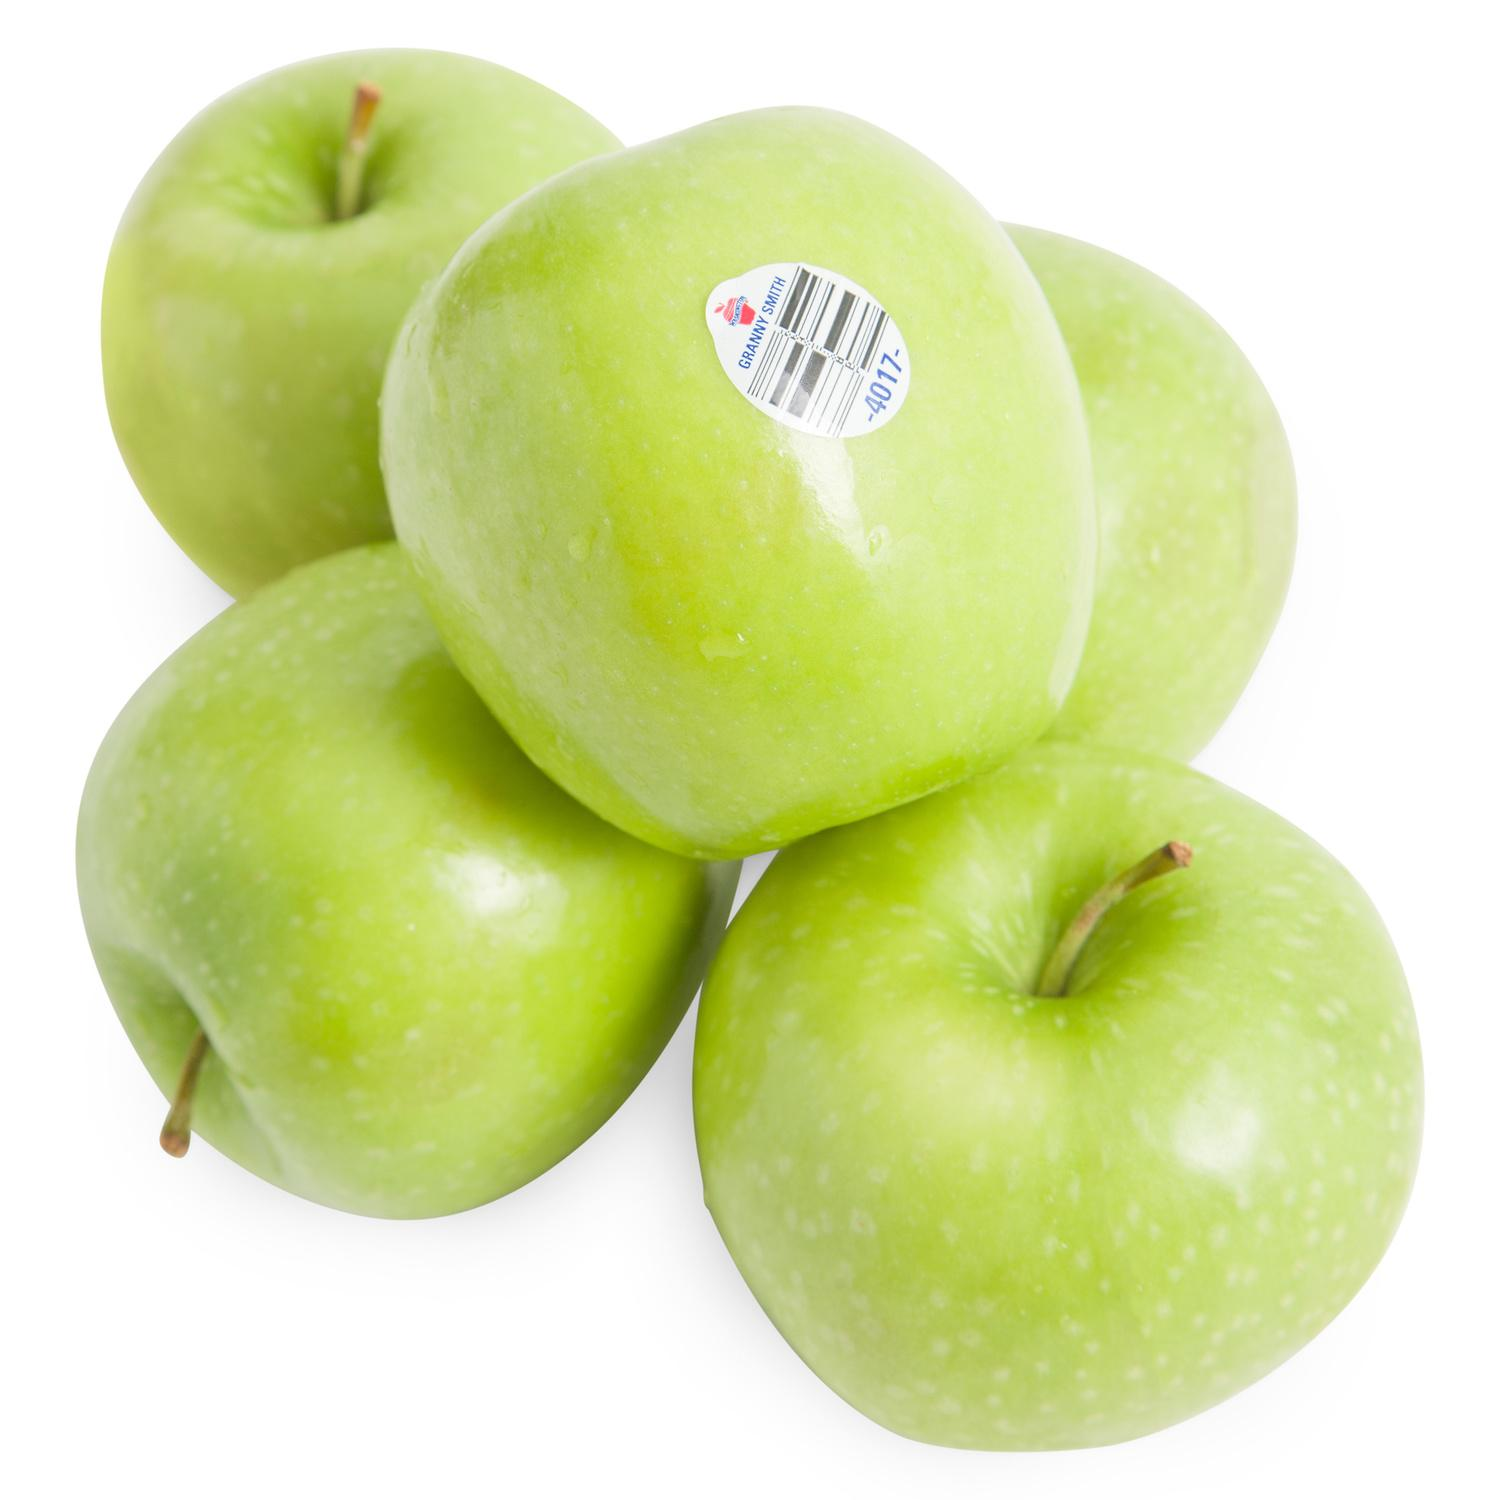 image of 1 Sysco Imperial Granny Smith Apple, Finely Diced